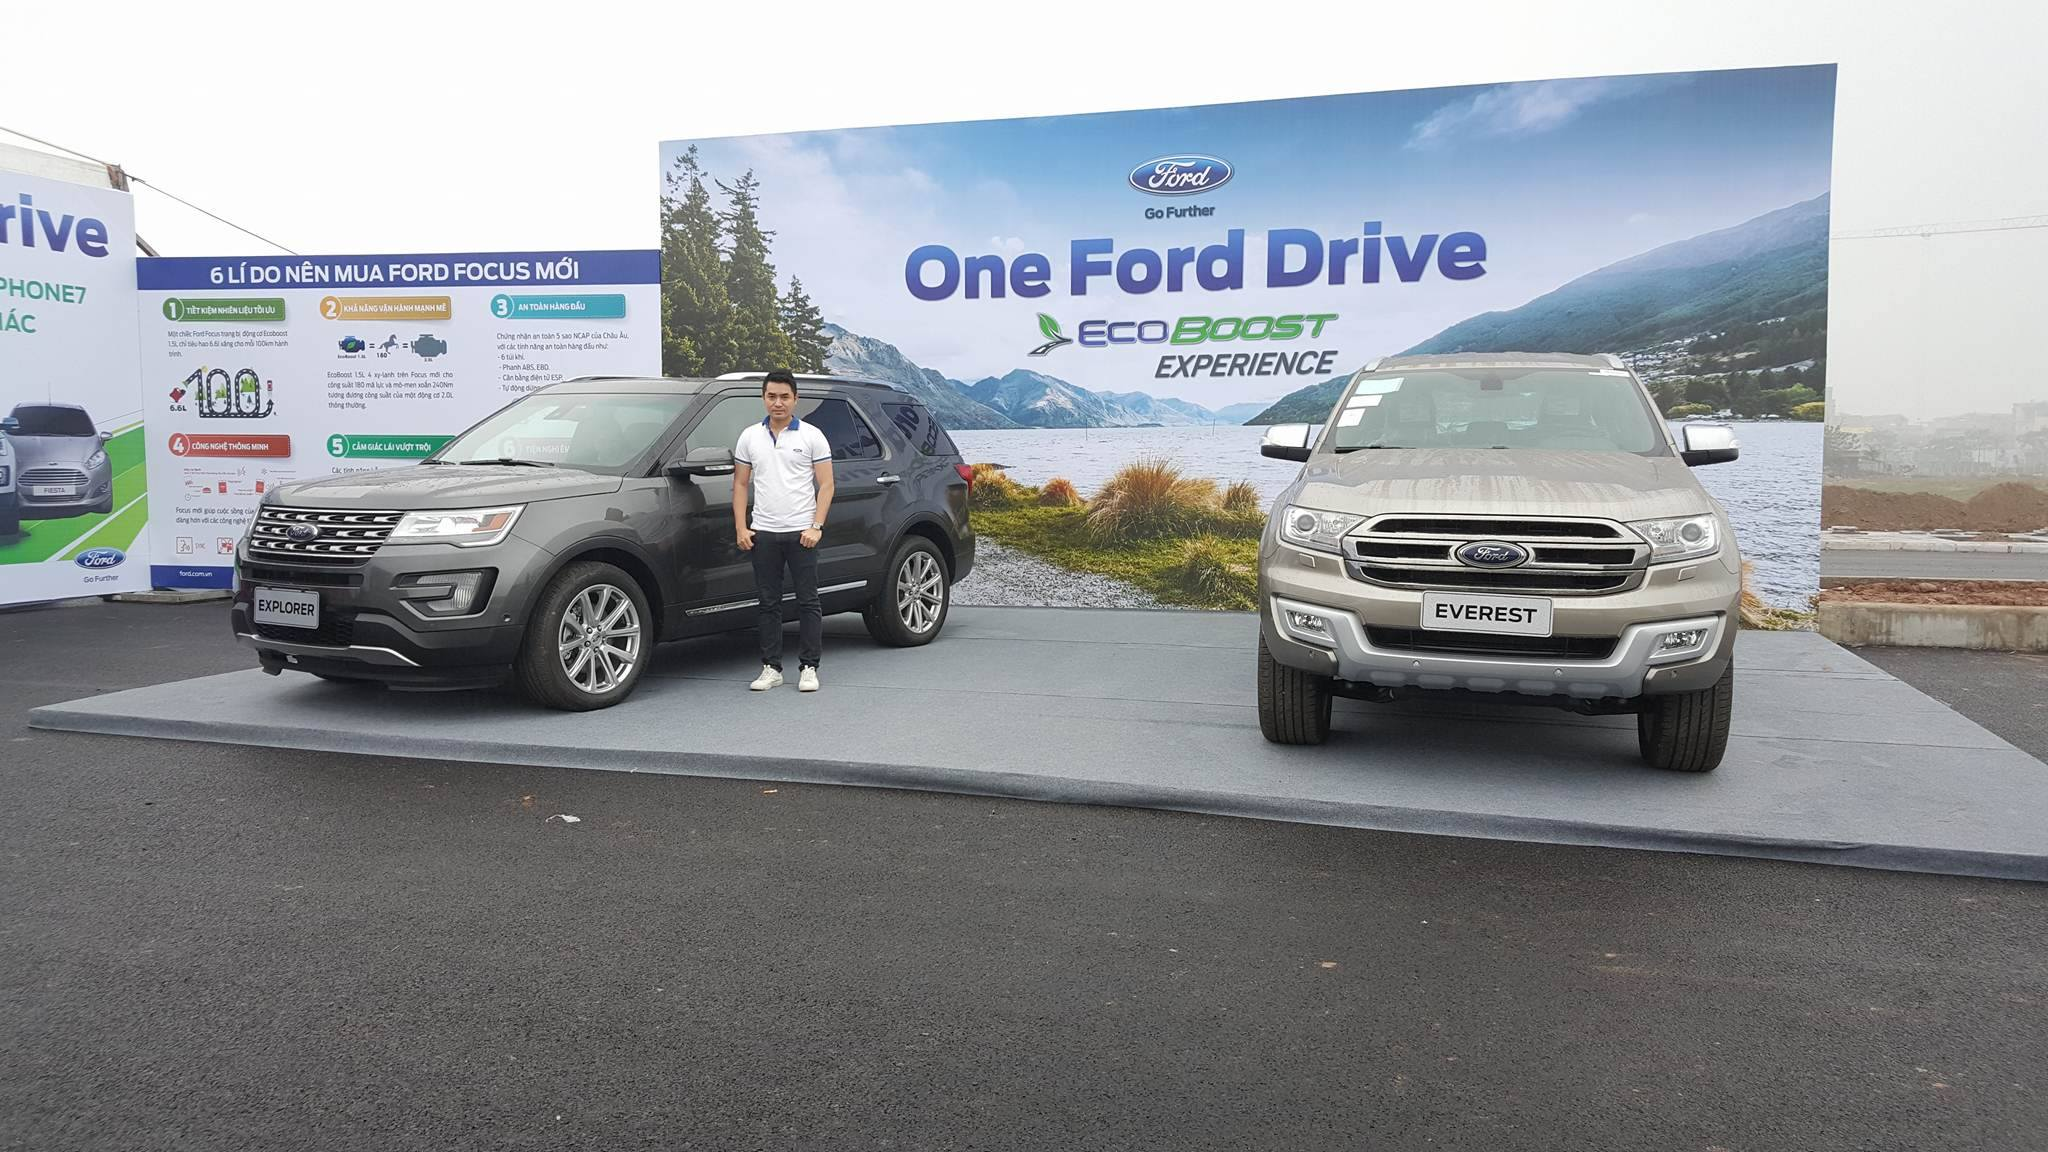 ford everest & Explorer